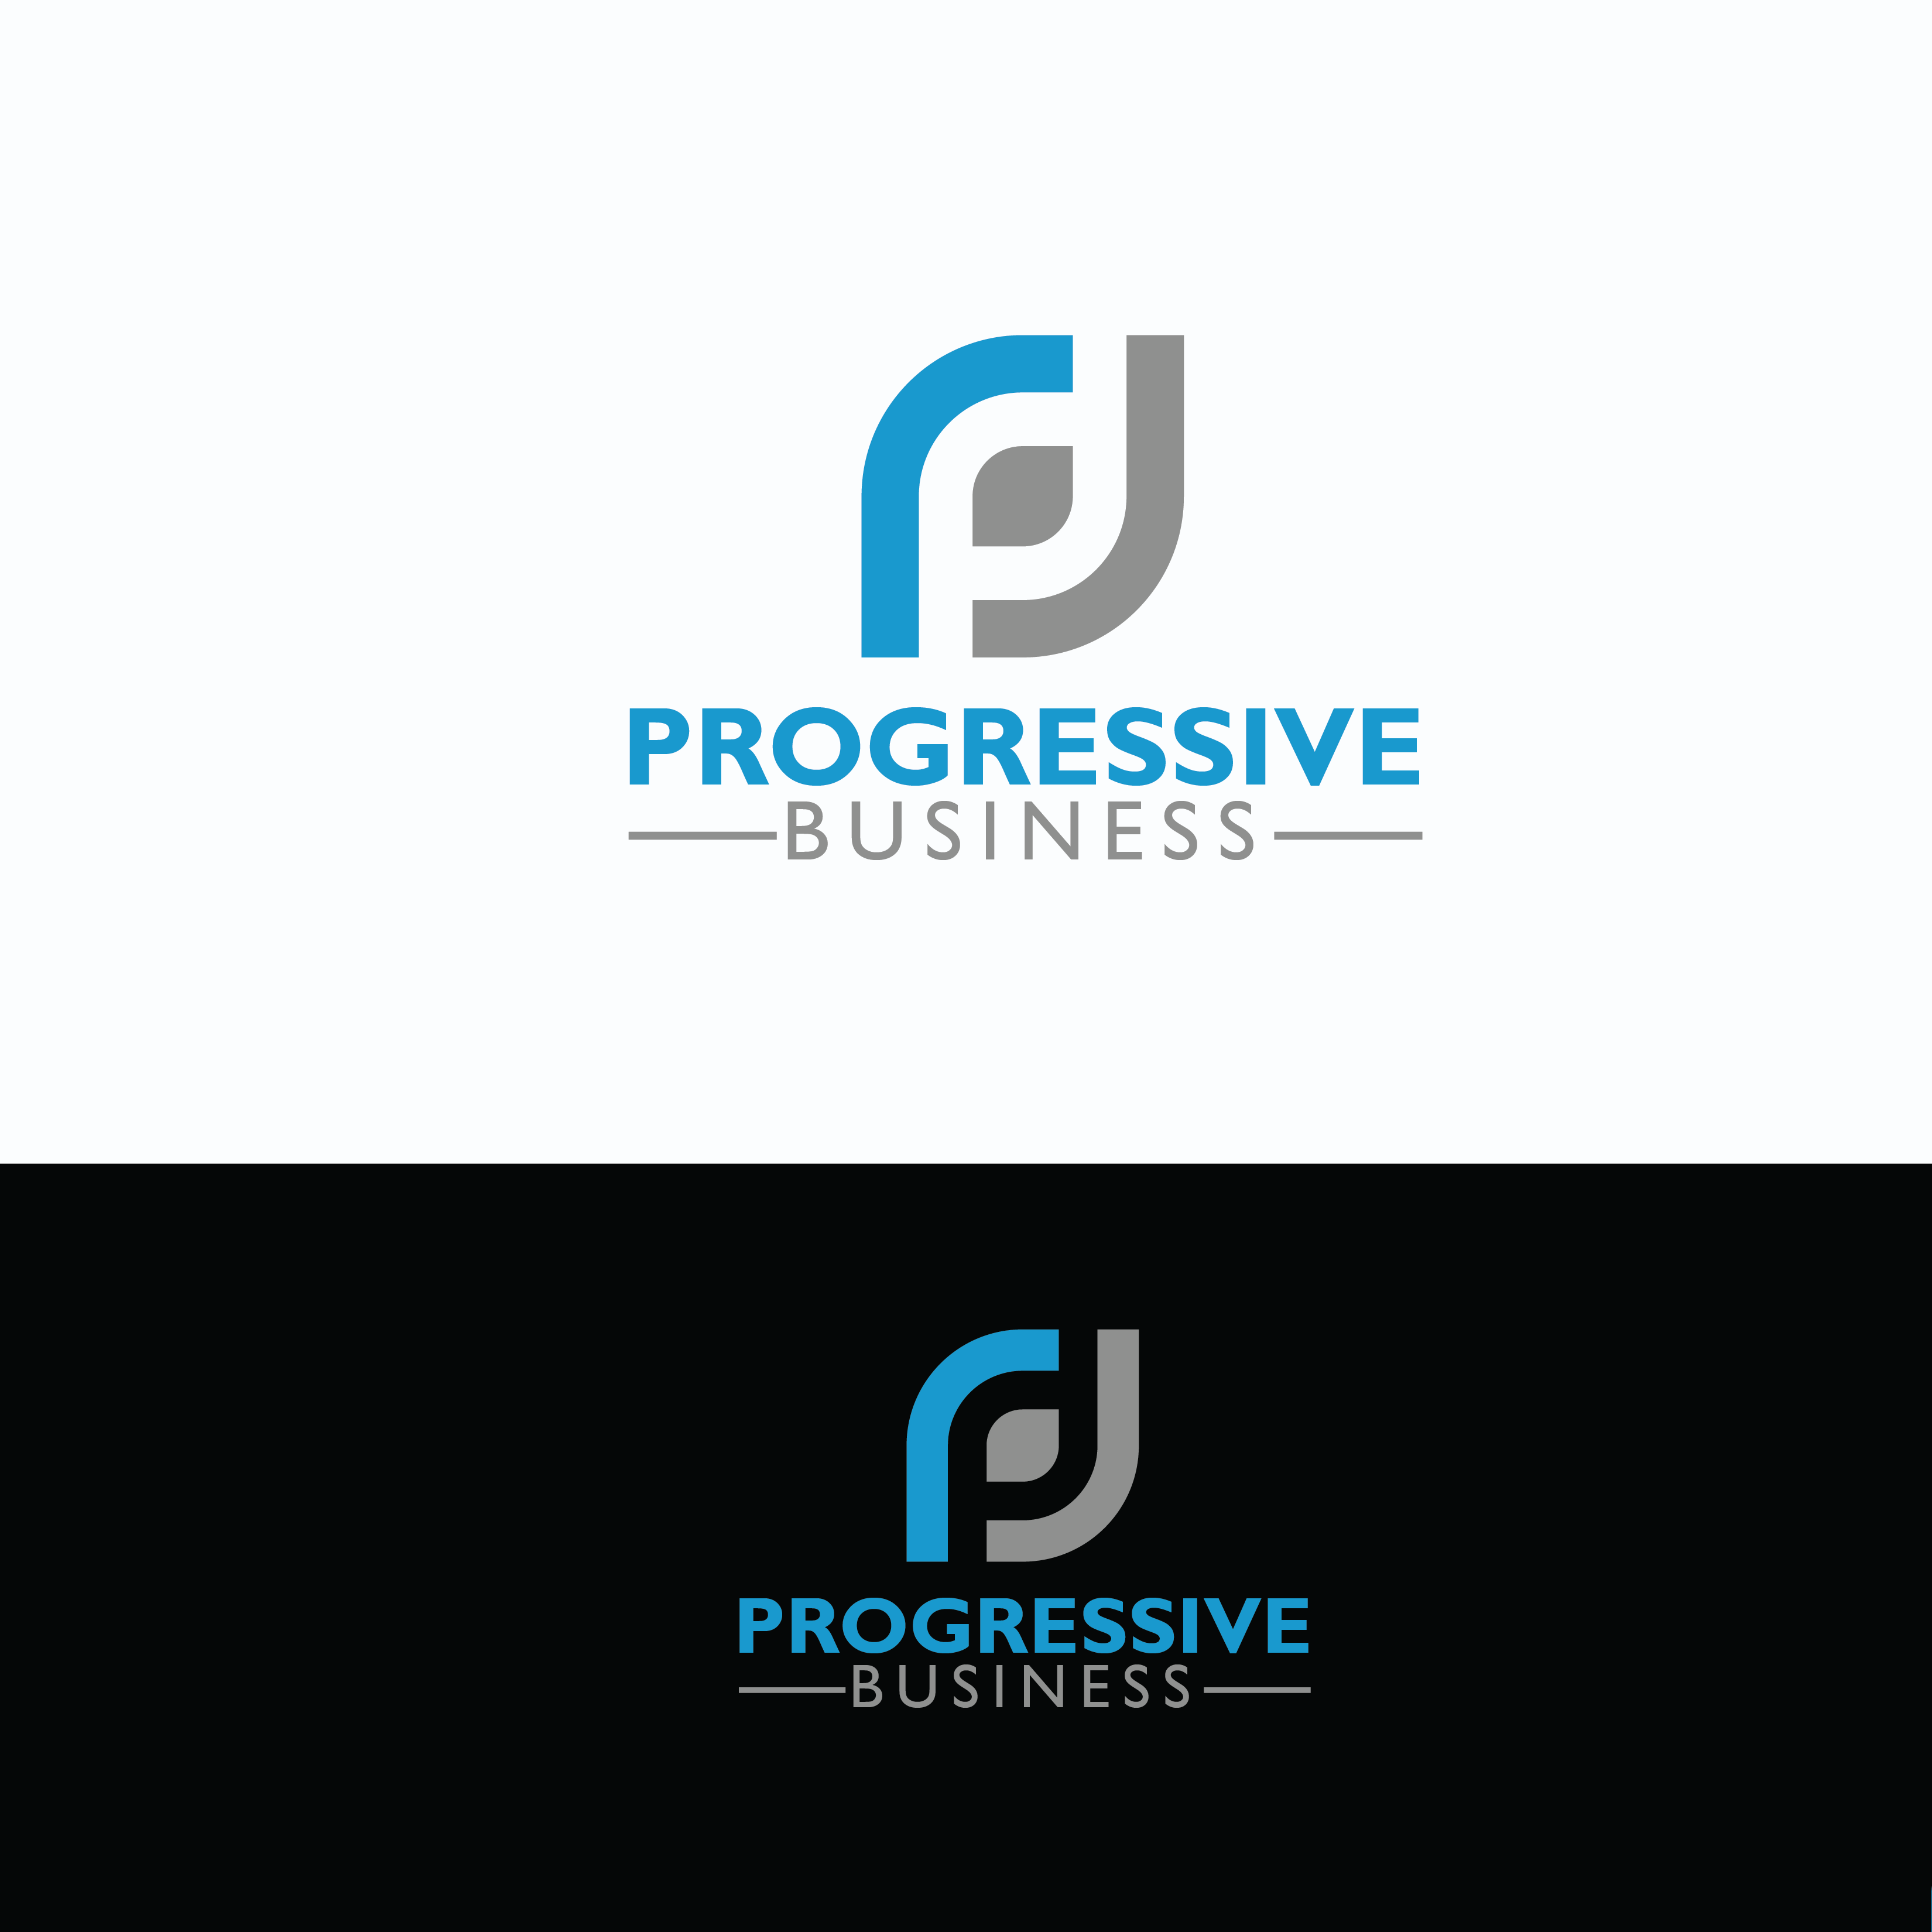 Logo Design by Private User - Entry No. 127 in the Logo Design Contest Captivating Logo Design for Progressive Business.